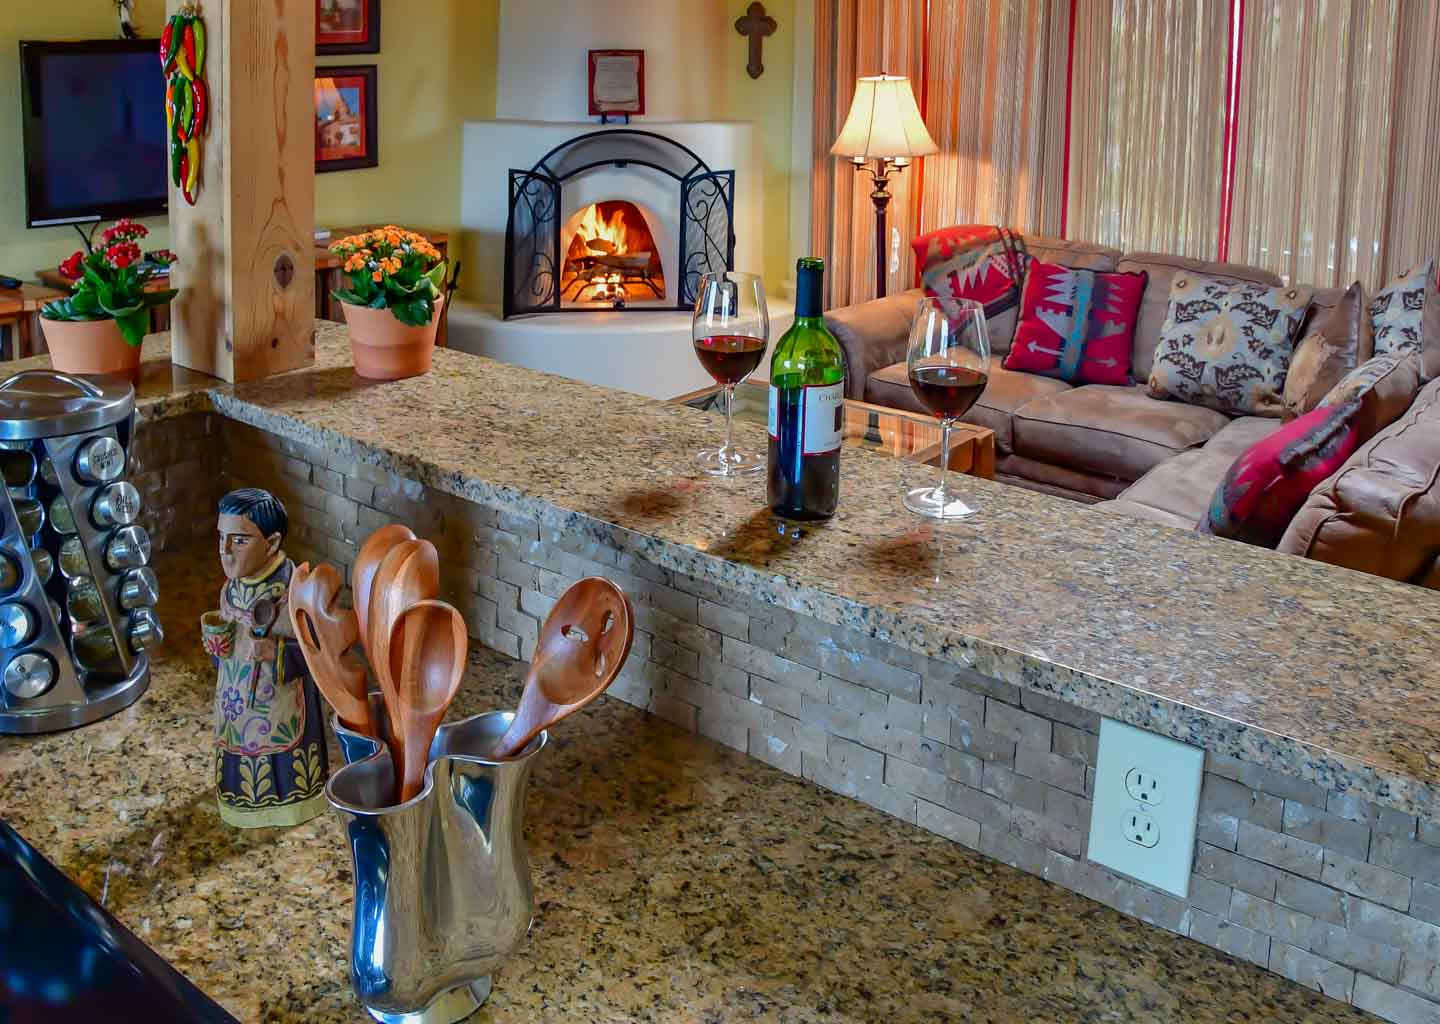 Kitchen at Fort Marcy Hotel Suites in Santa Fe, New Mexico